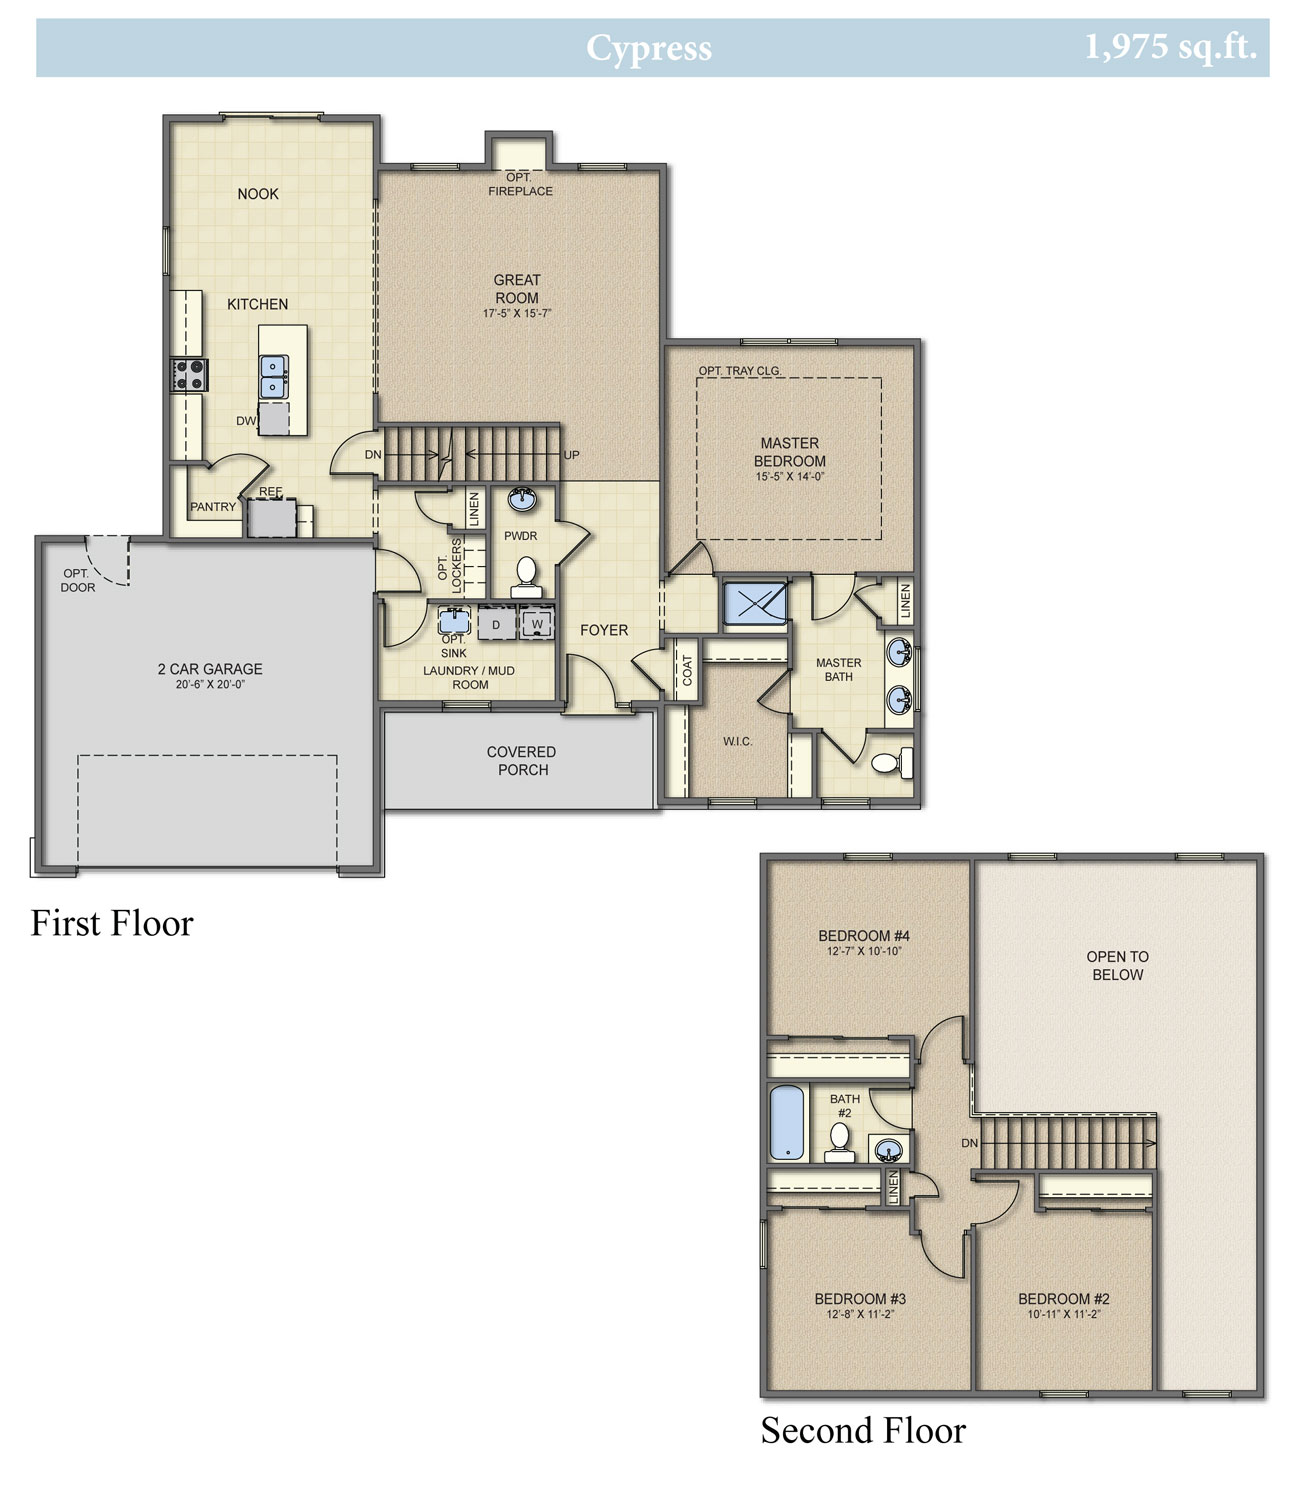 Cypress All Plans Are Fully Customizable Build With Capital Homes